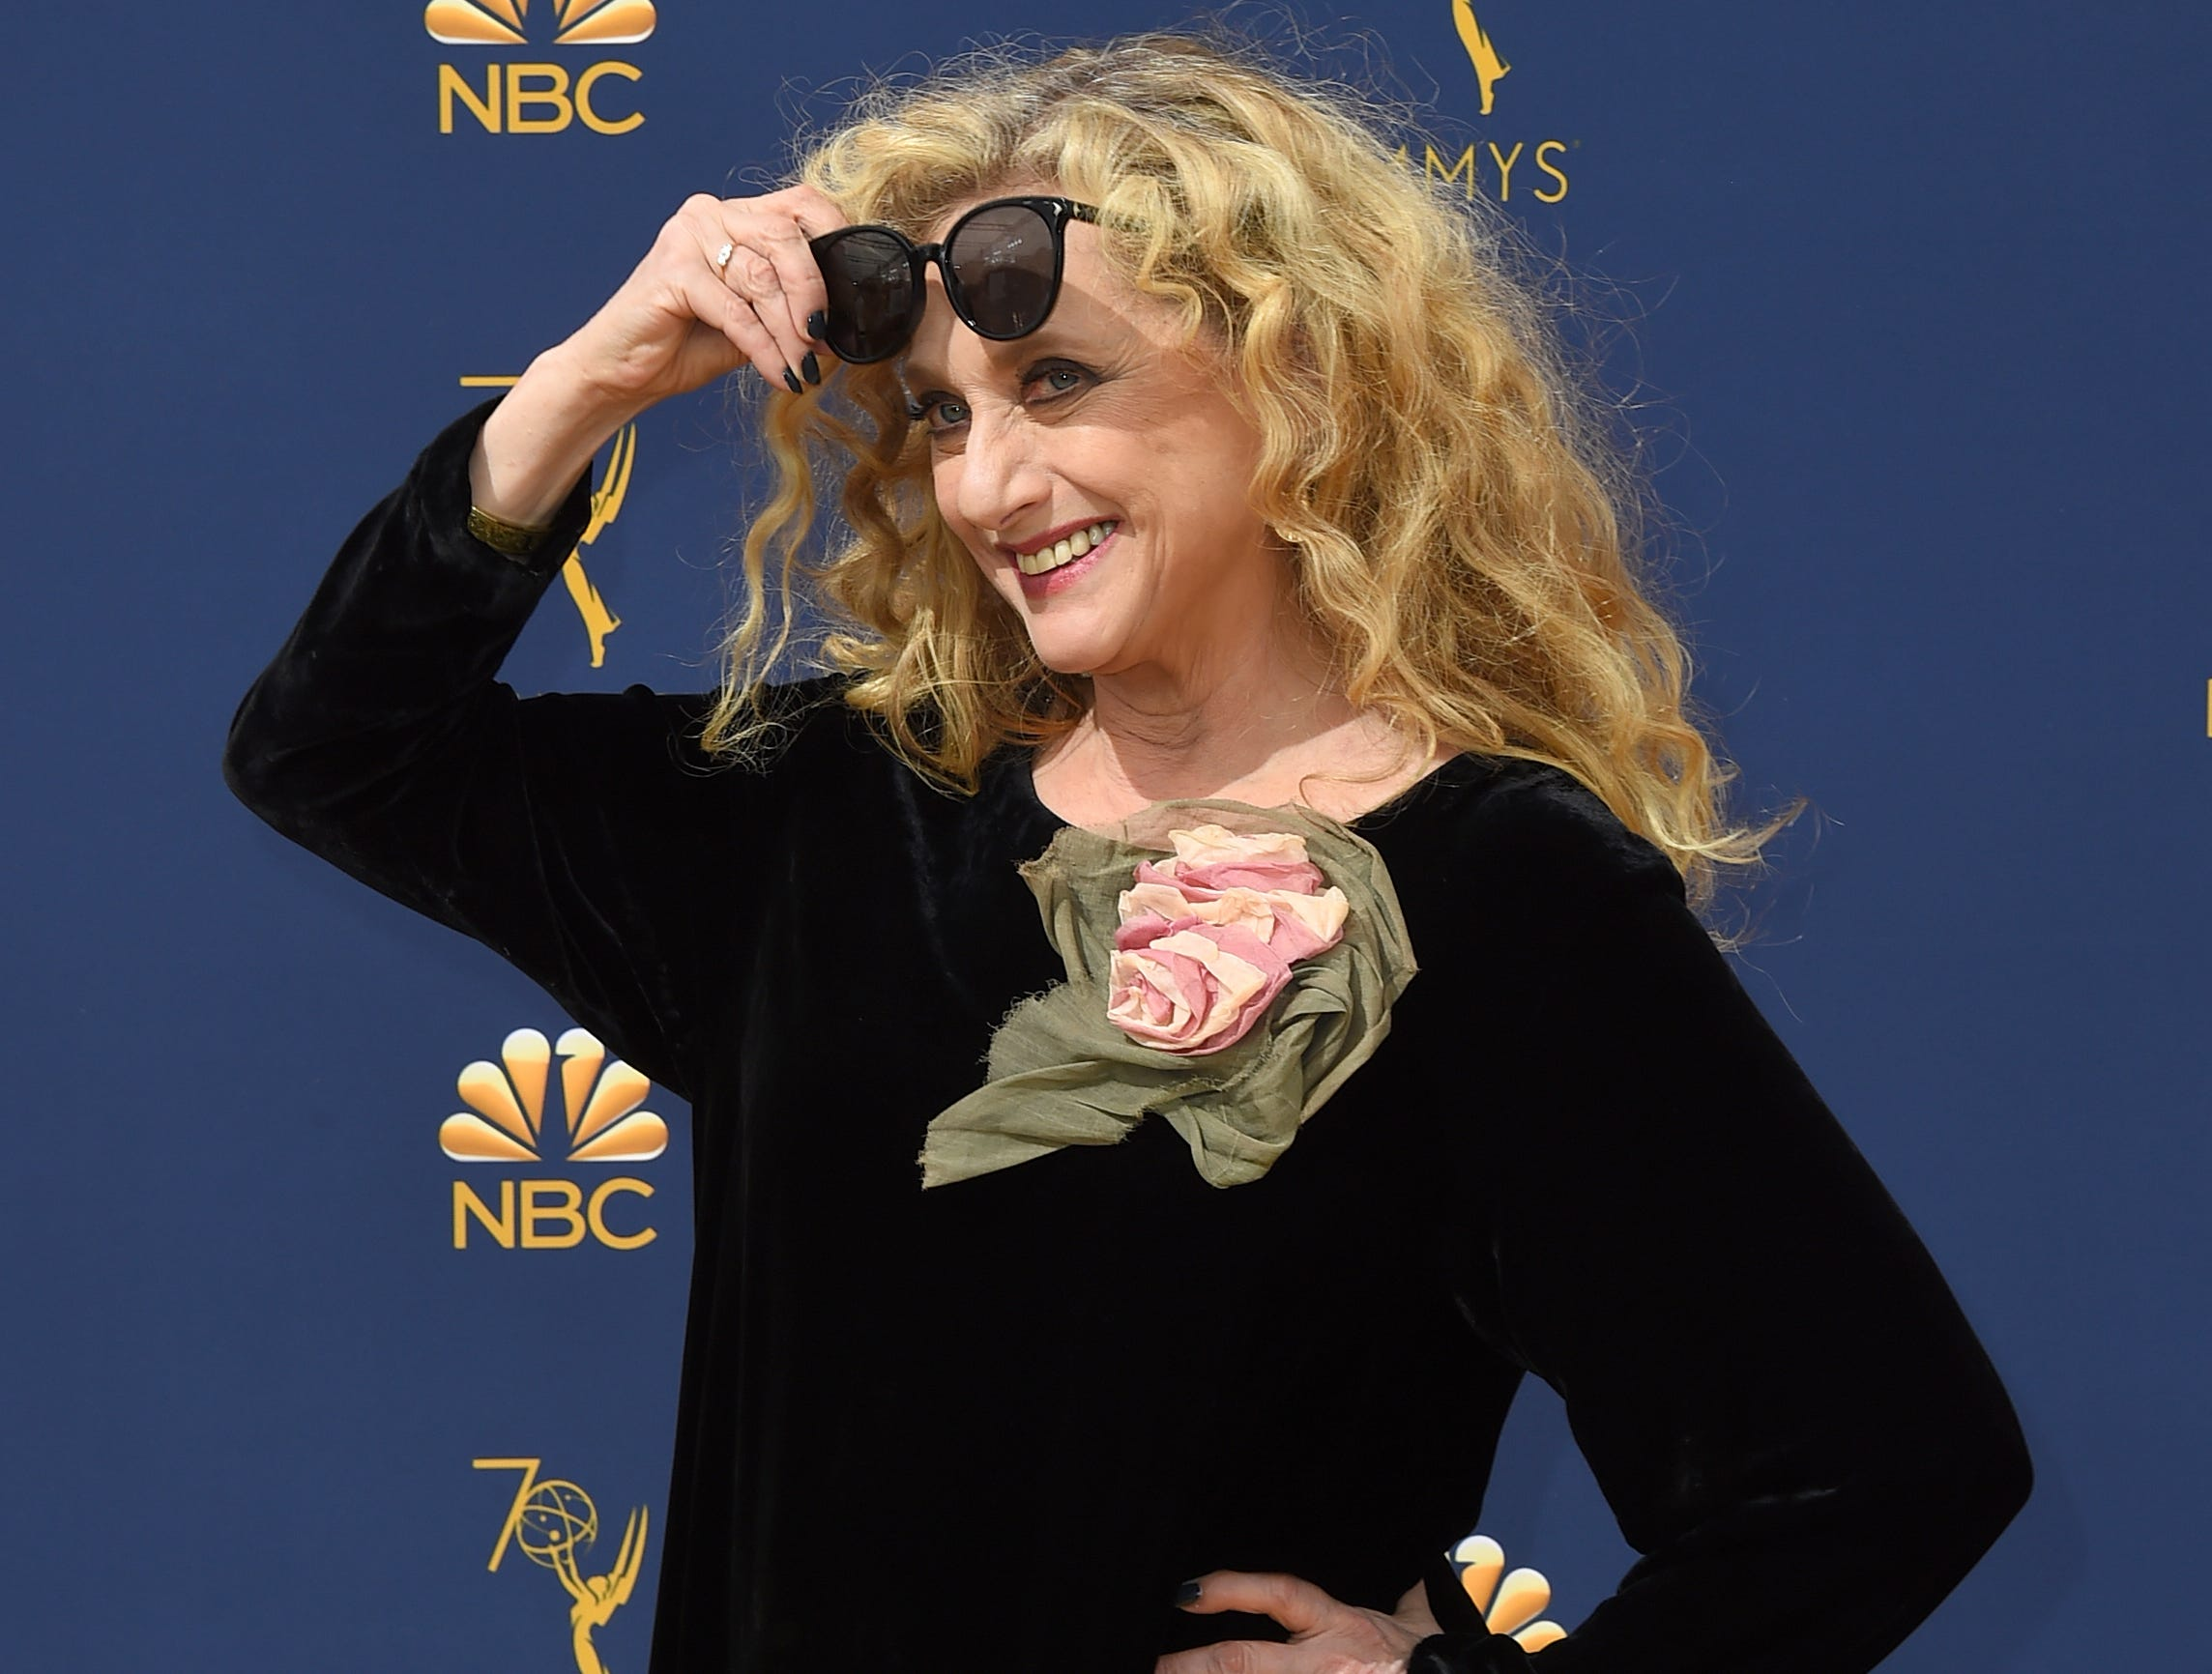 Carol Kane arrives at the 70th Primetime Emmy Awards on Monday, Sept. 17, 2018, at the Microsoft Theater in Los Angeles.